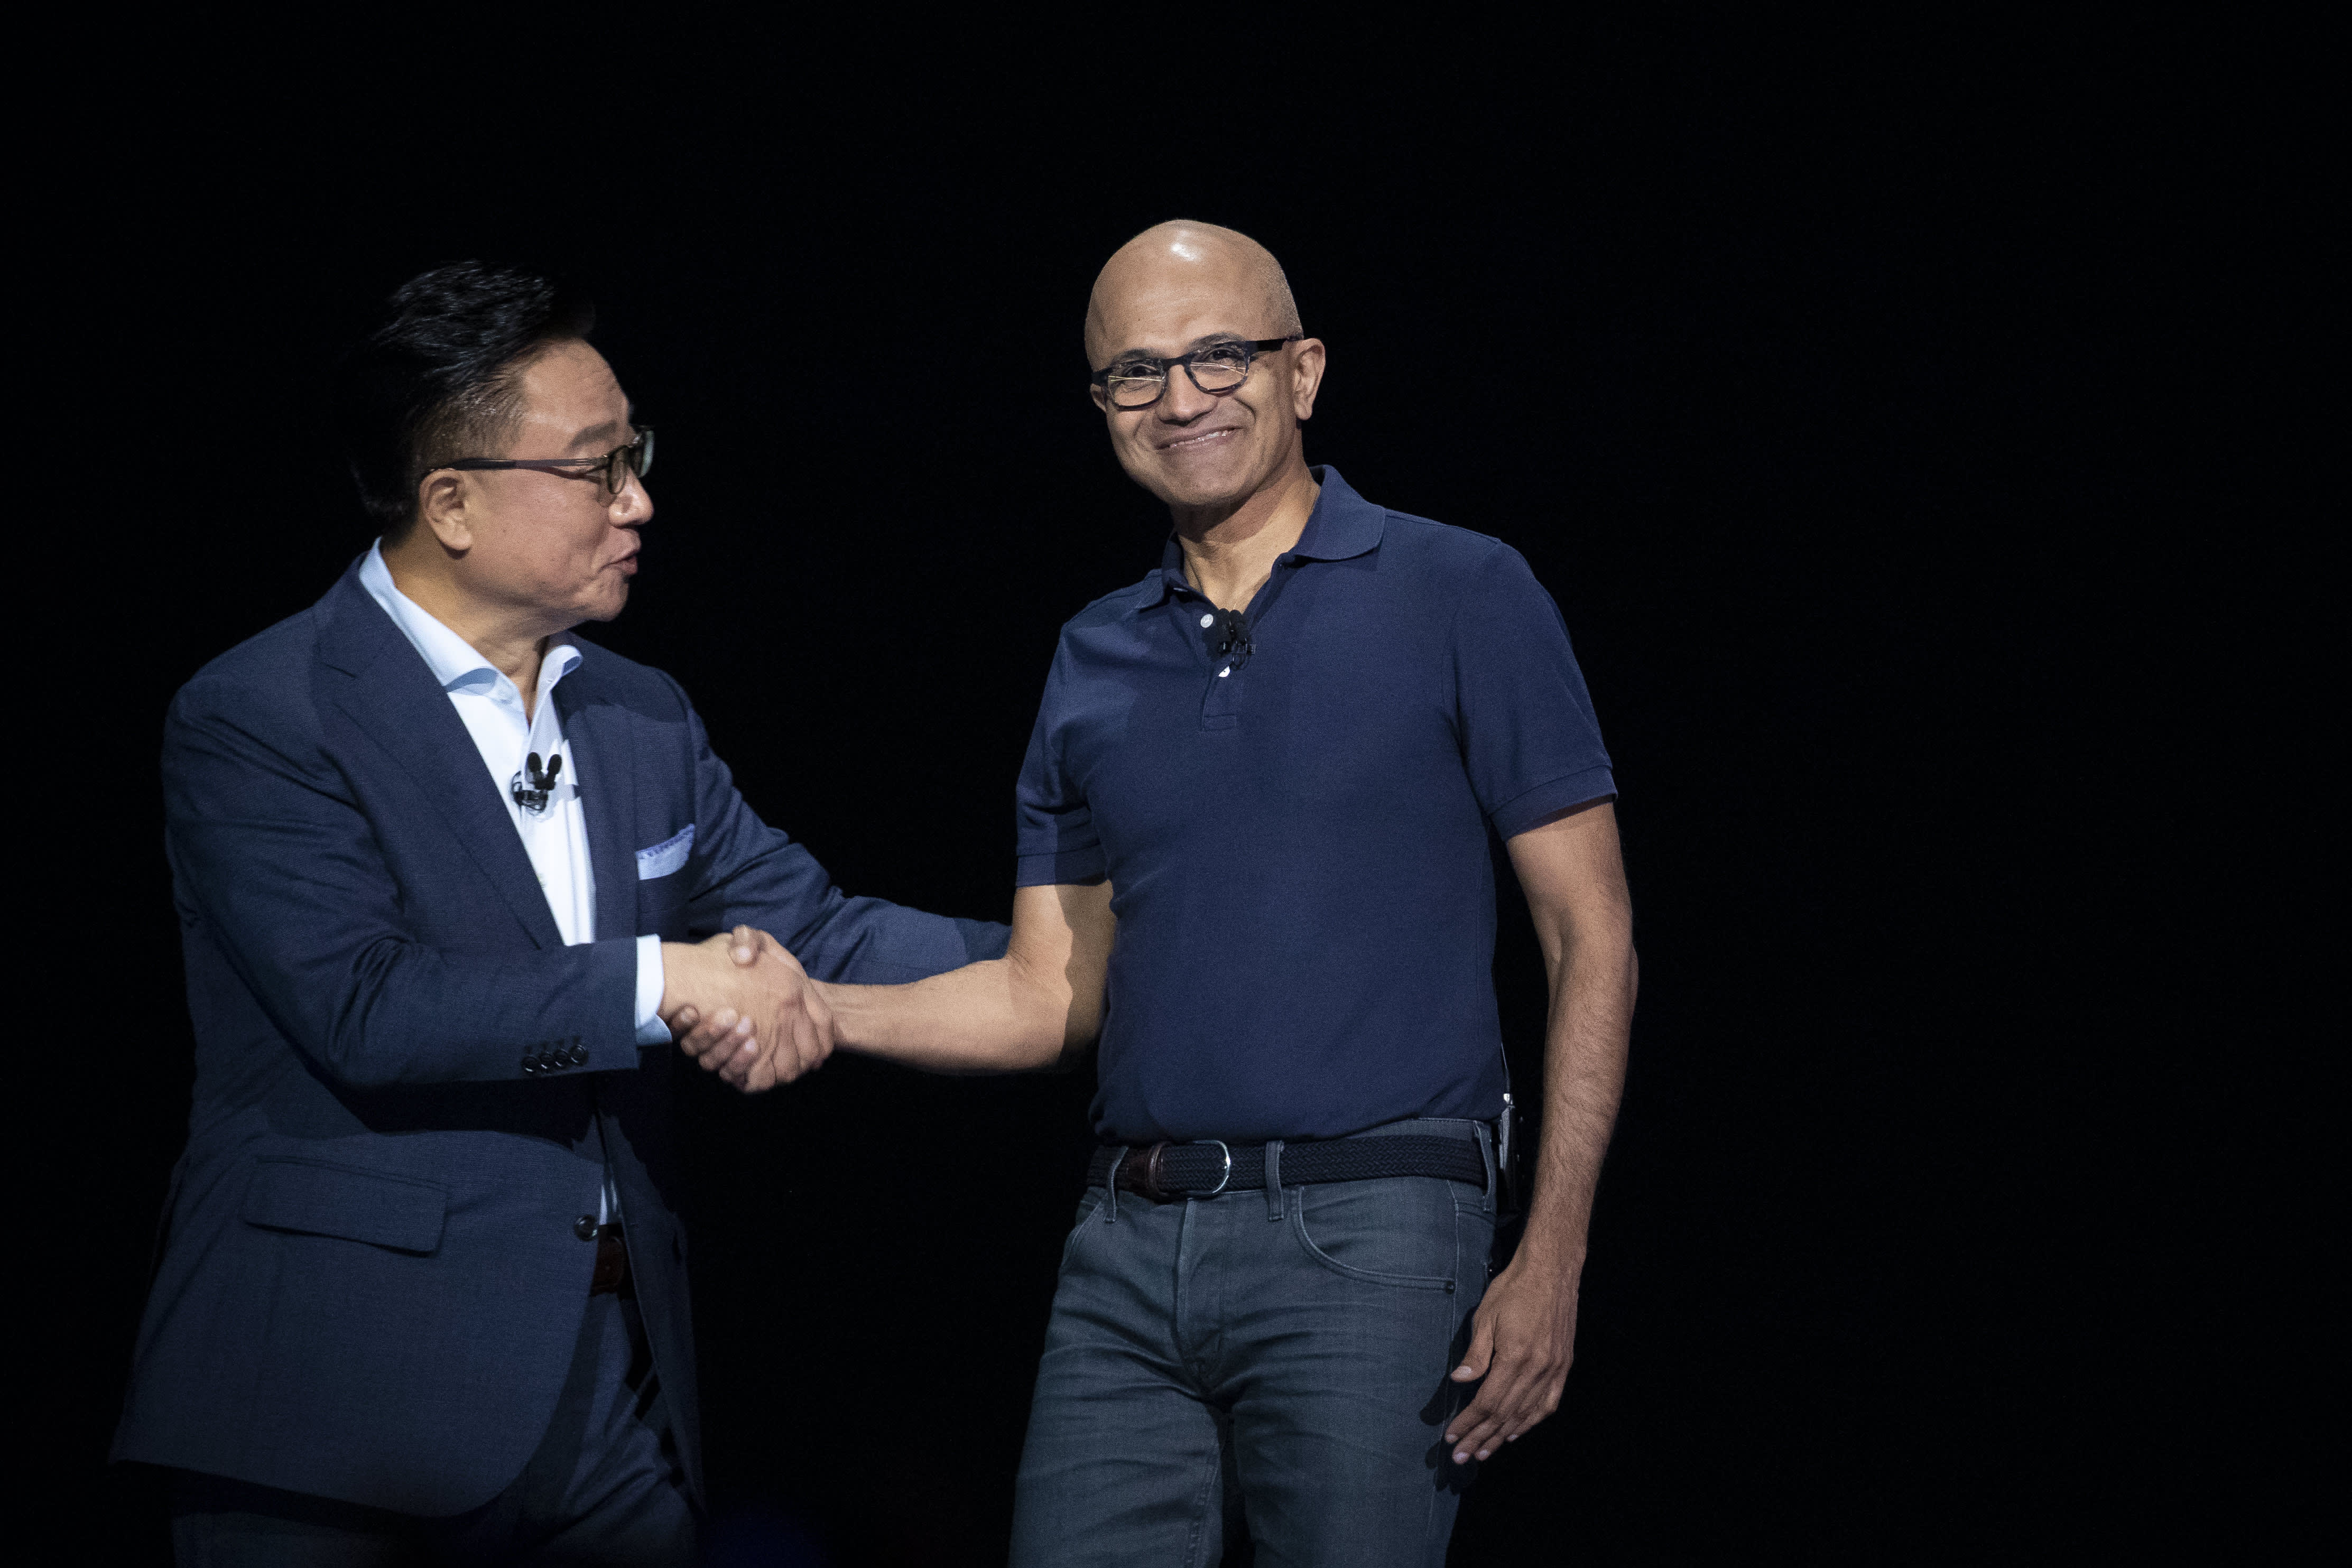 Microsoft's strategy of cozying up to other platforms is working, so the company is extending it